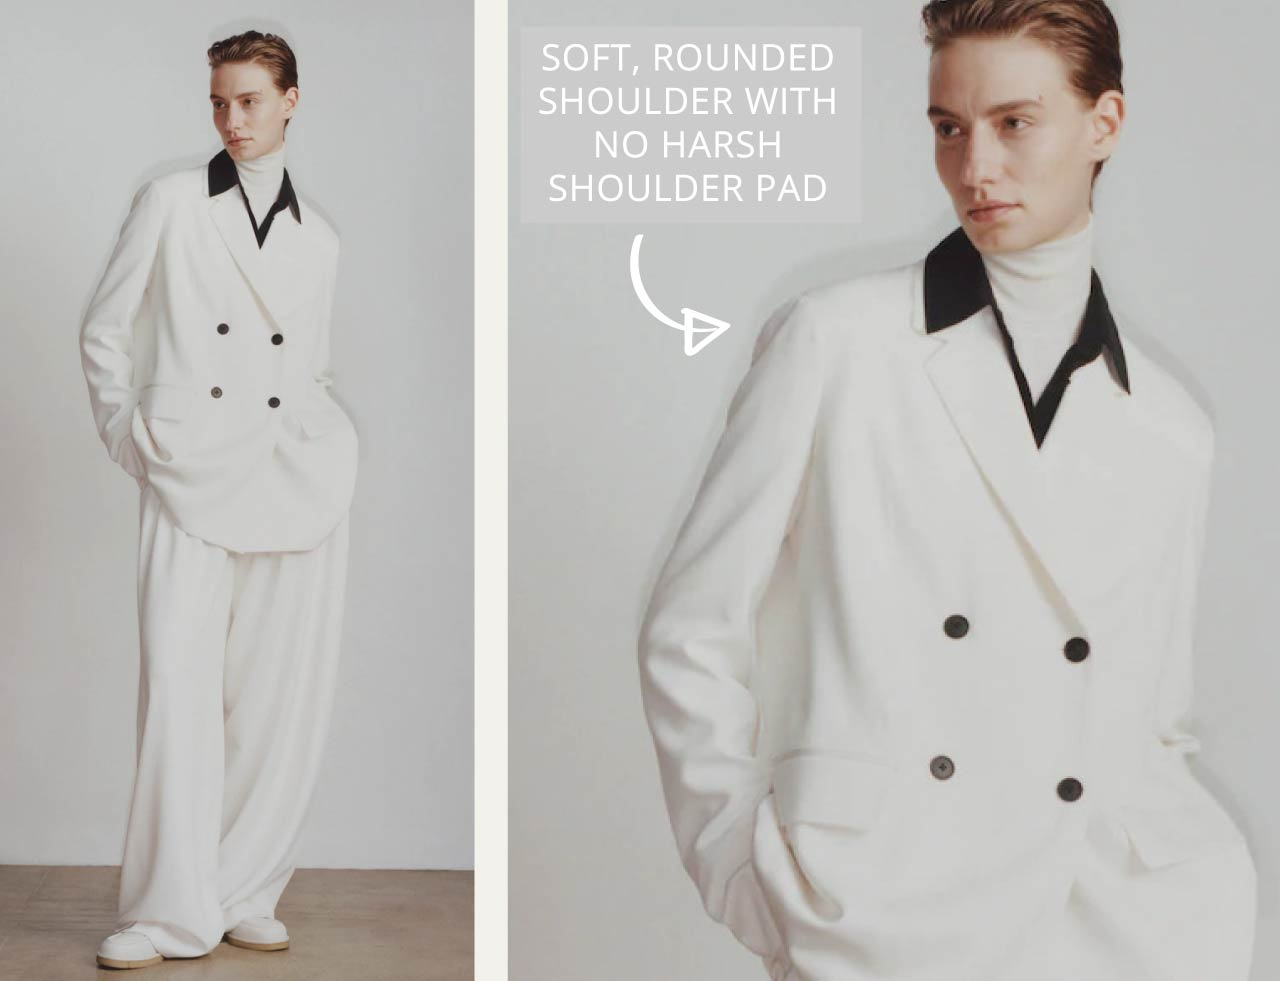 Slight Dropped Shoulders at The Row | The Cutting Class. Soft, rounded shoulder, no harsh shoulder pad.